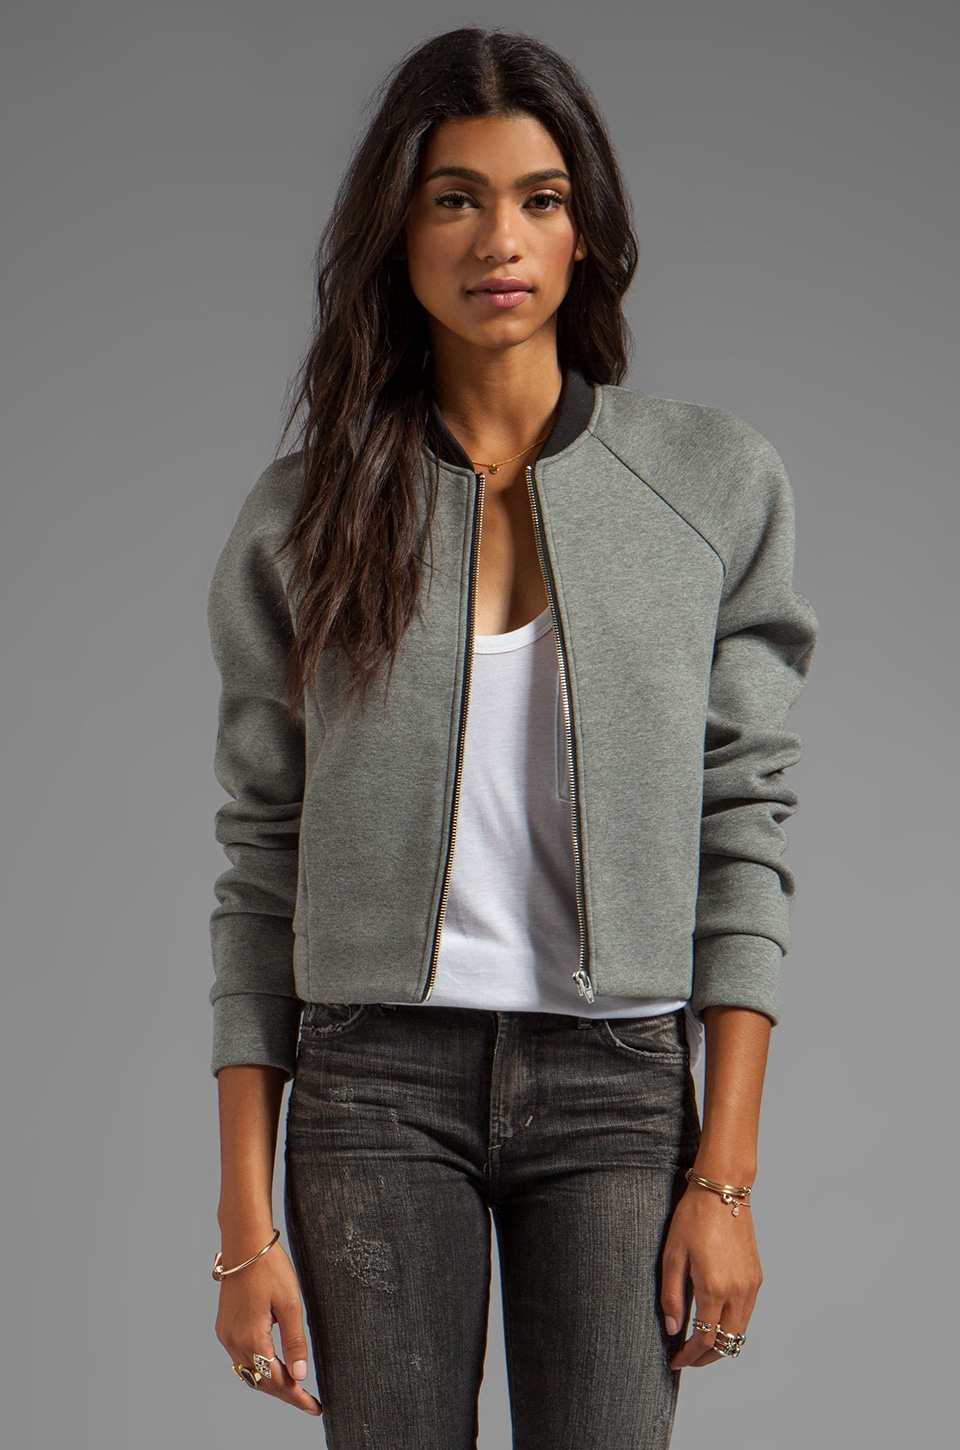 T by Alexander Wang Jersey Bonded Neoprene Bomber Jacket in Heather Grey